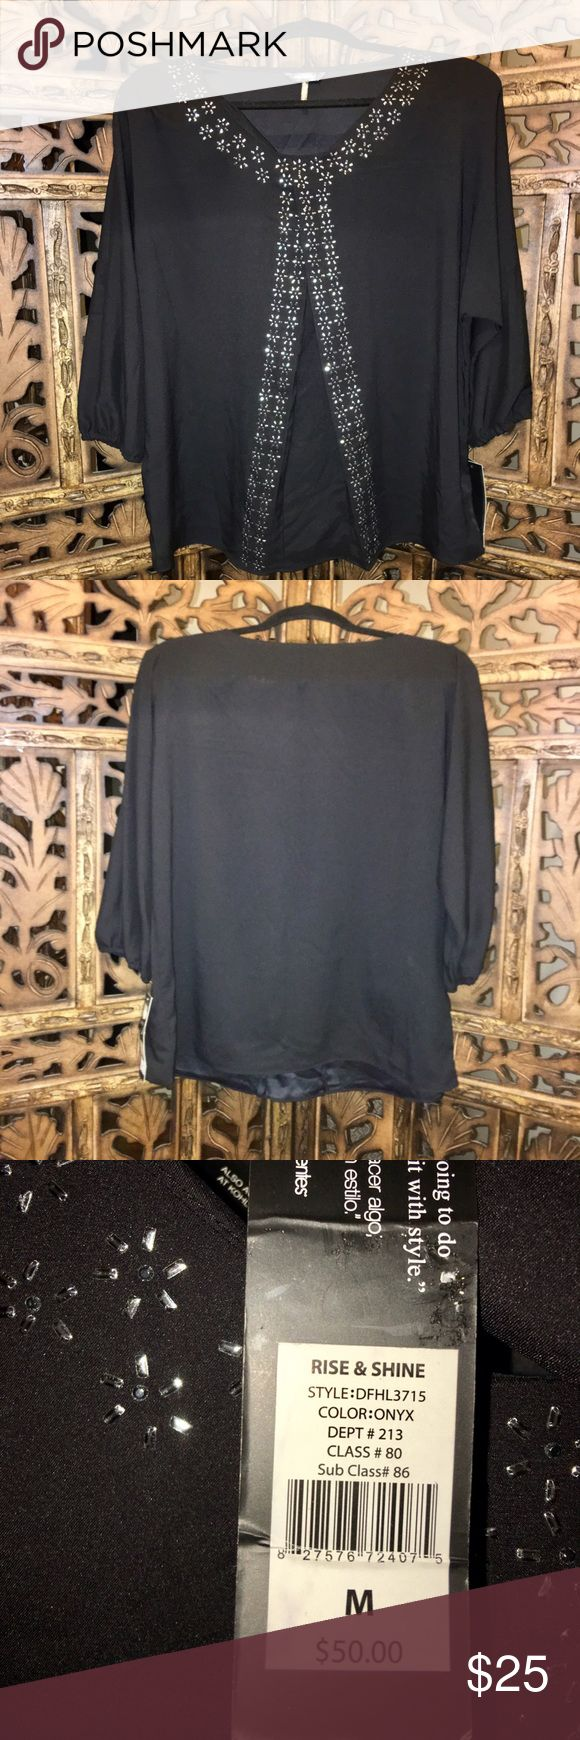 Daisy Fuentes Front Pleat Blouse Pretty Daisy Fuentes Blouse, Embellished at the collar and down the front, NWT. Daisy Fuentes Tops Blouses